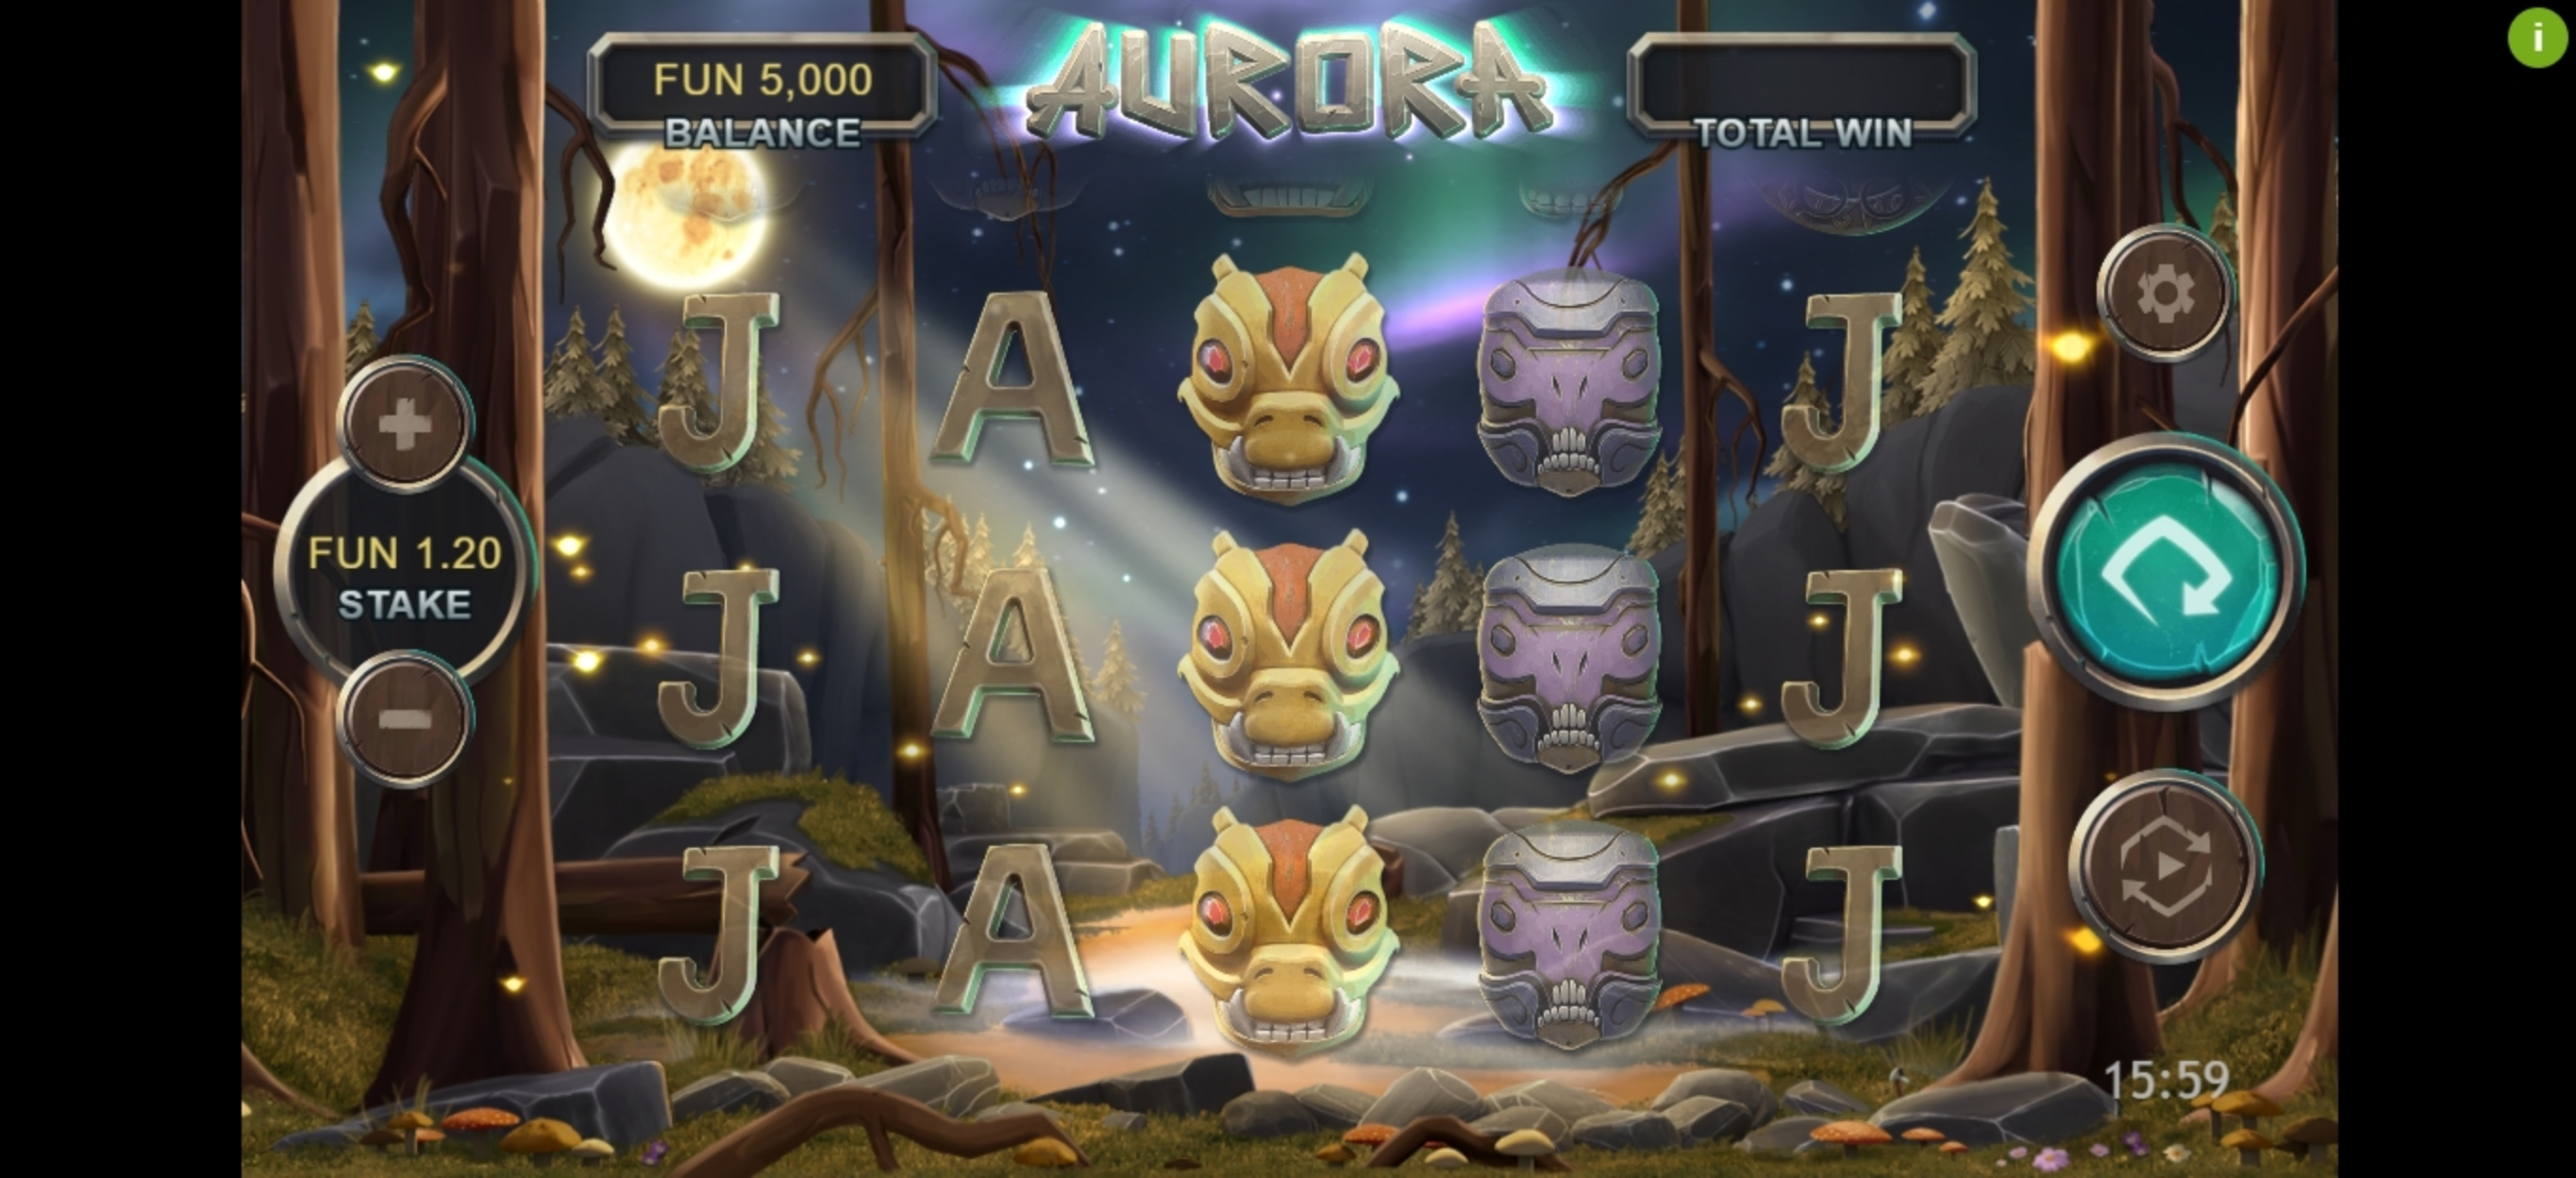 Reels in Aurora (Northern Lights Gaming) Slot Game by Northern Lights Gaming